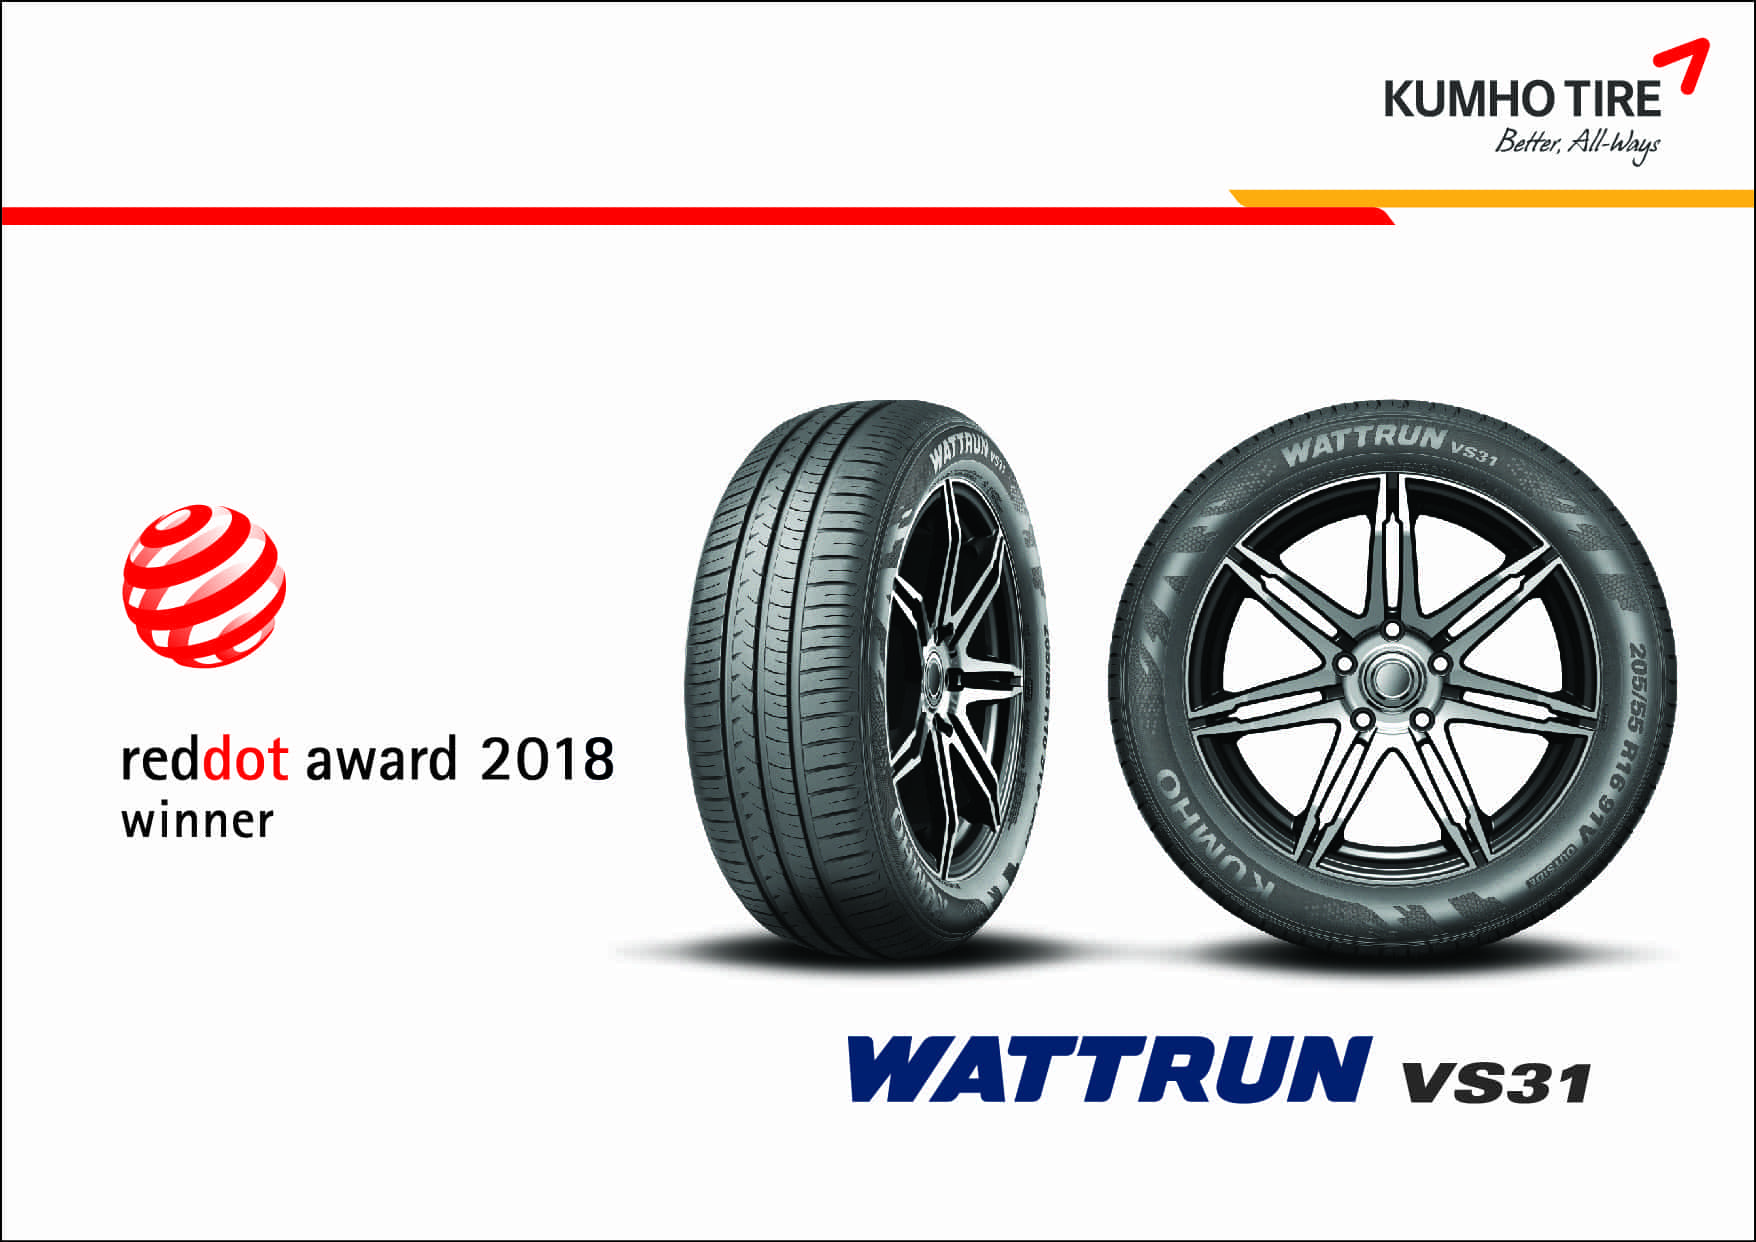 Kumho Tyres WATTRUN VS31 has won the Germanys Reddot Design Award